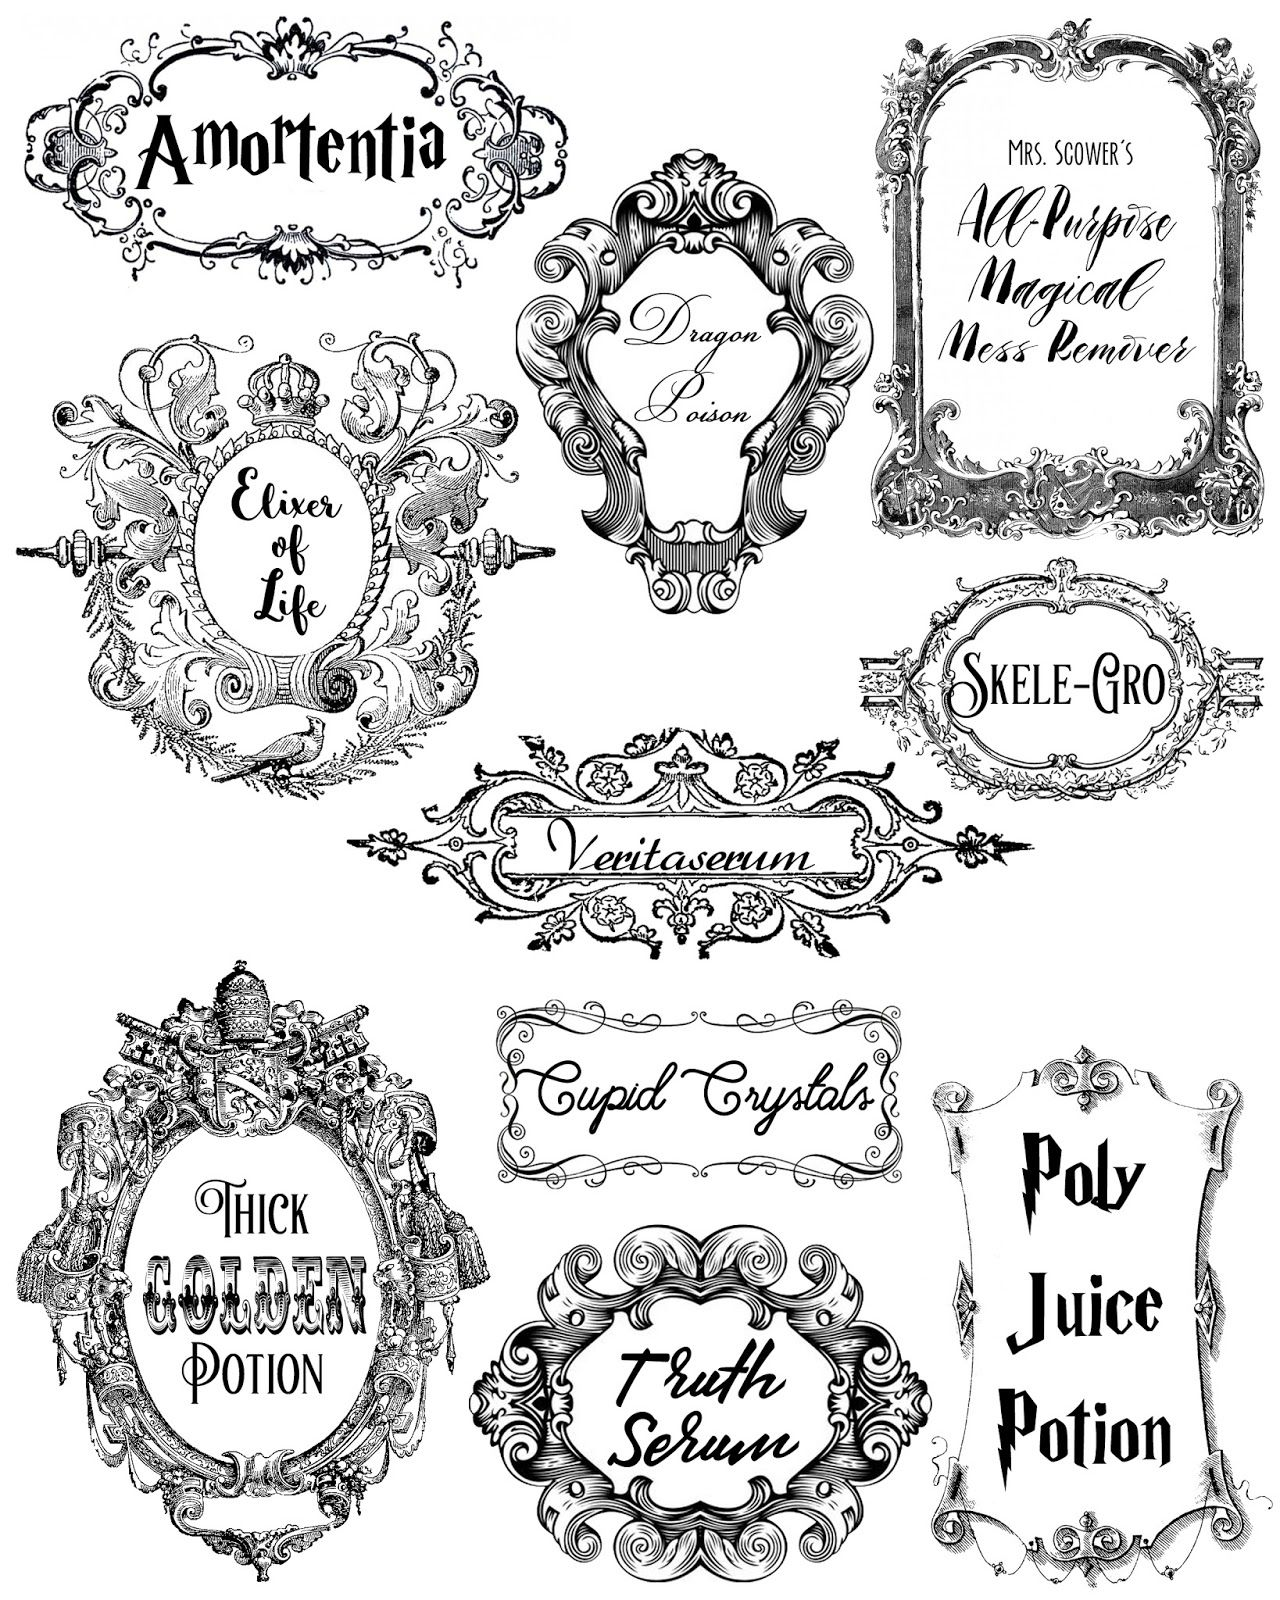 Potions And Poisons In